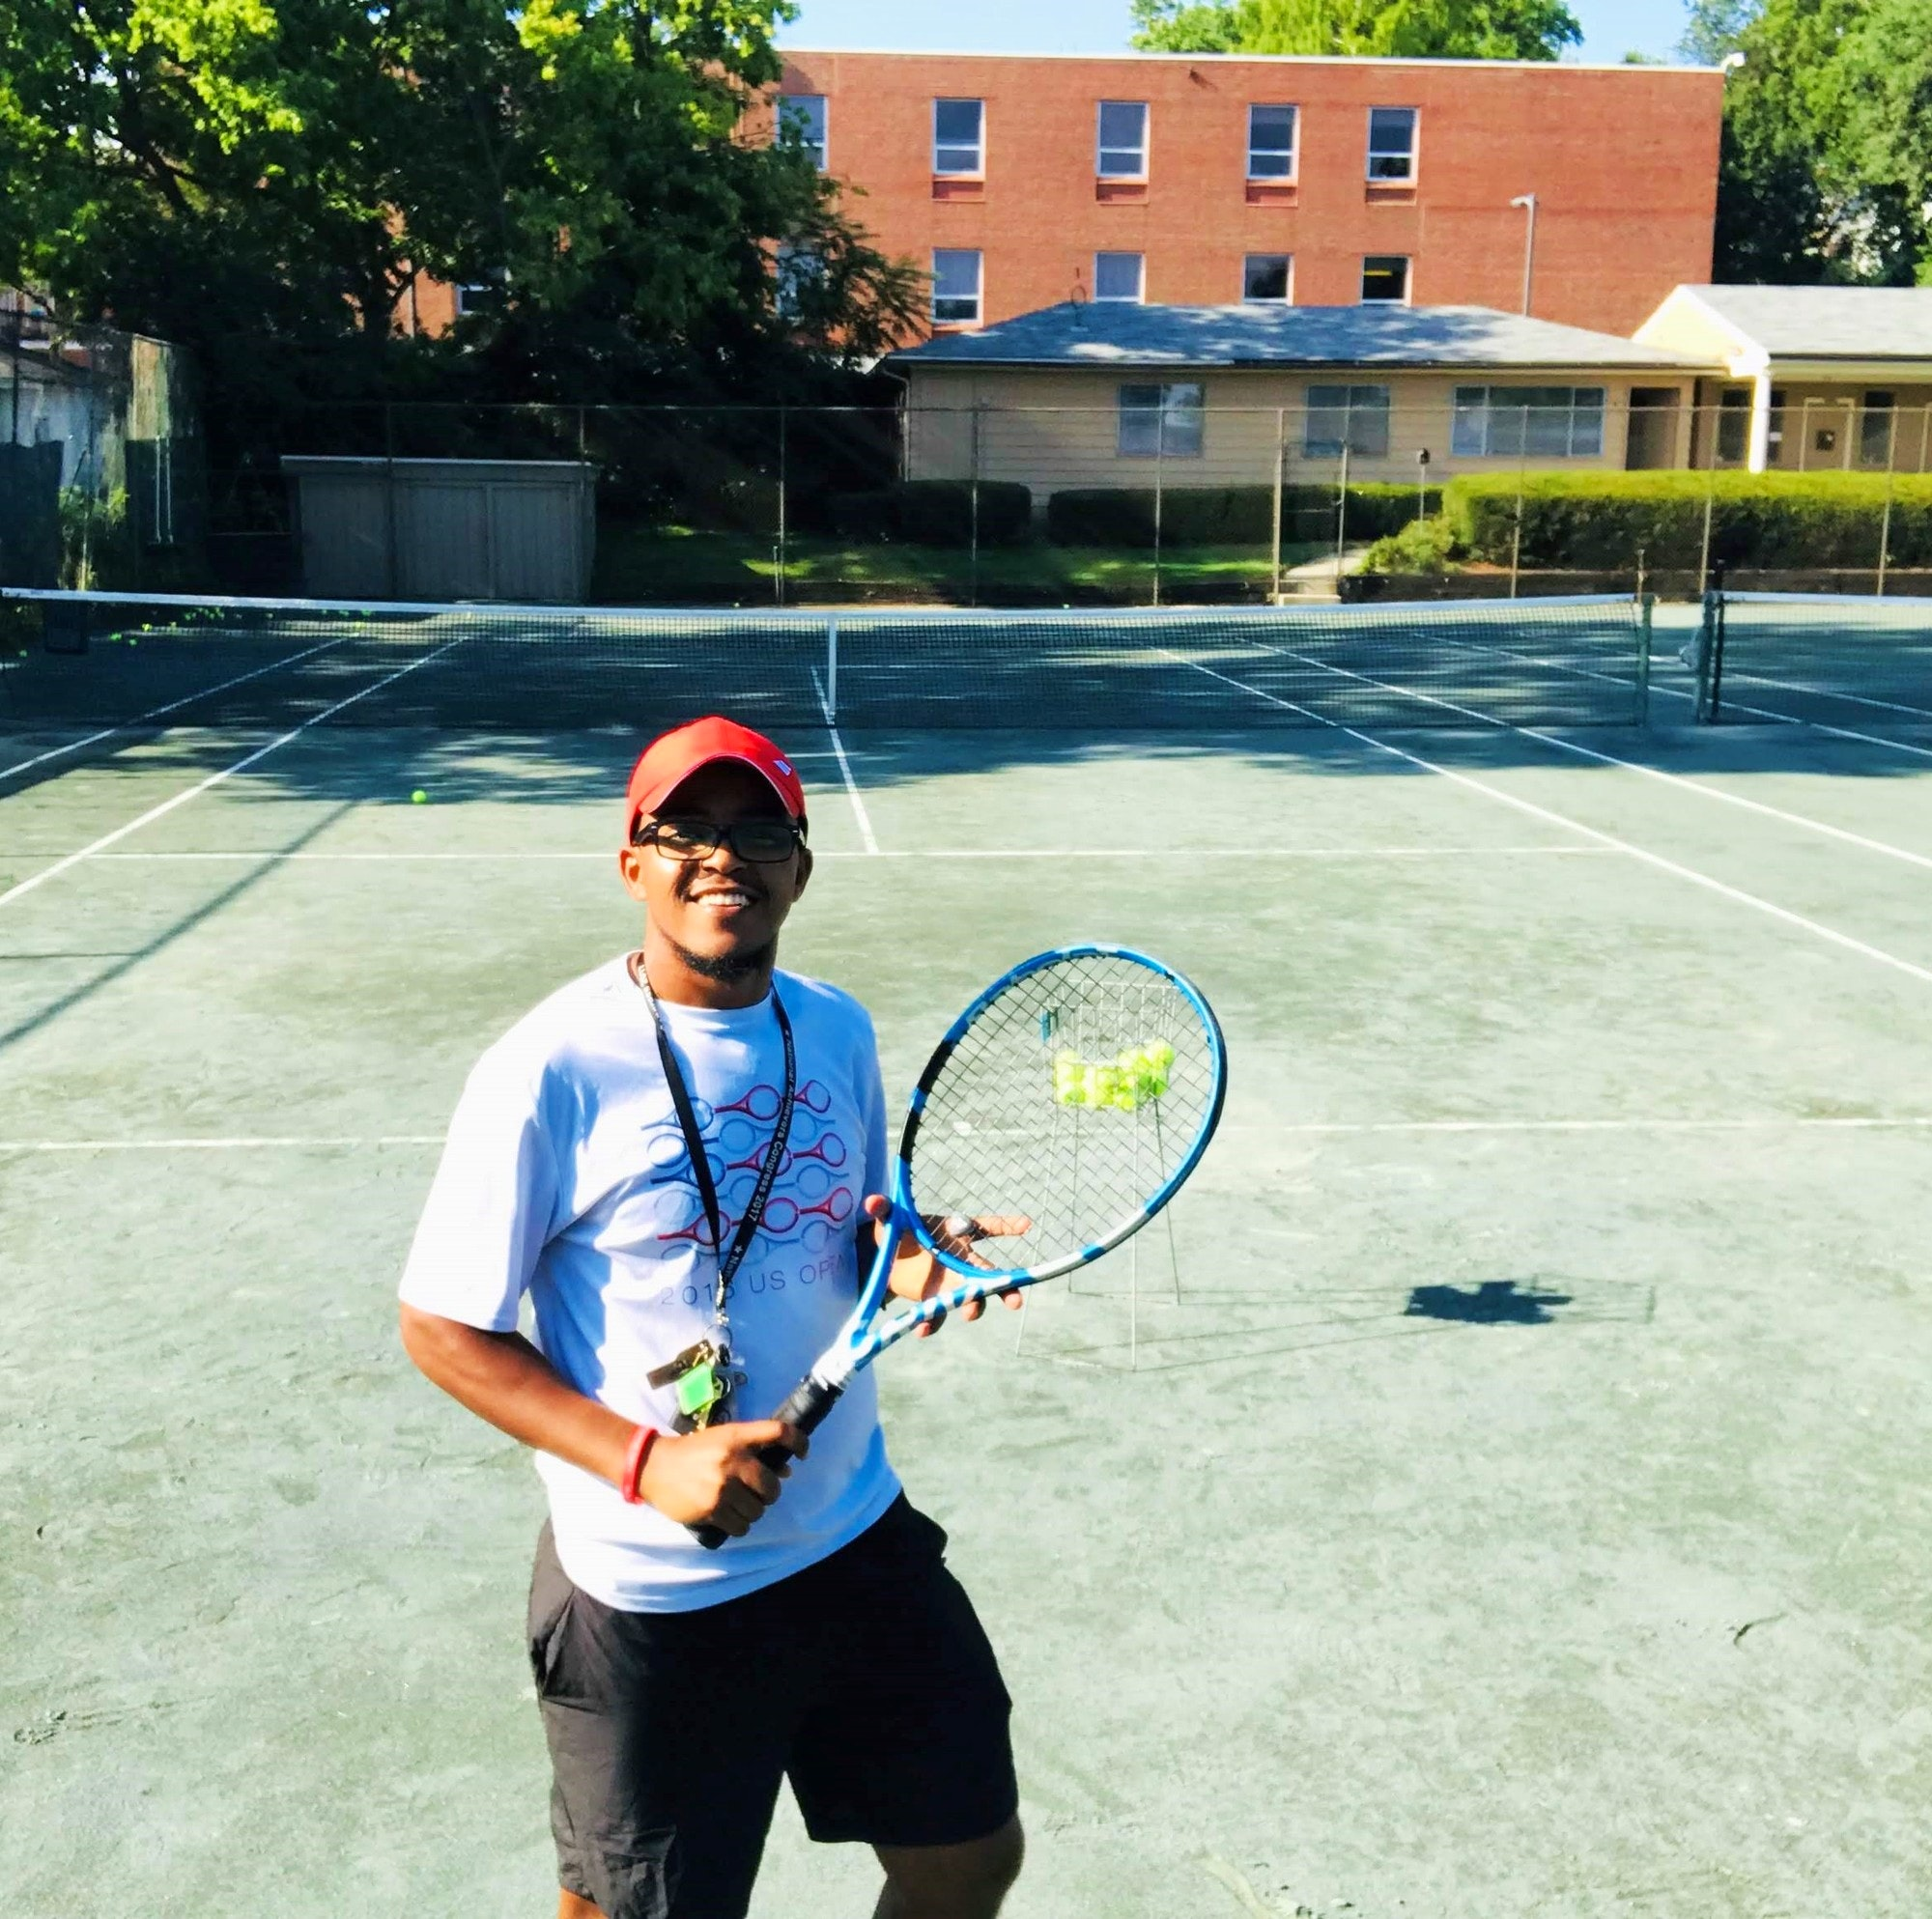 Samuel K. teaches tennis lessons in Waxhaw, NC